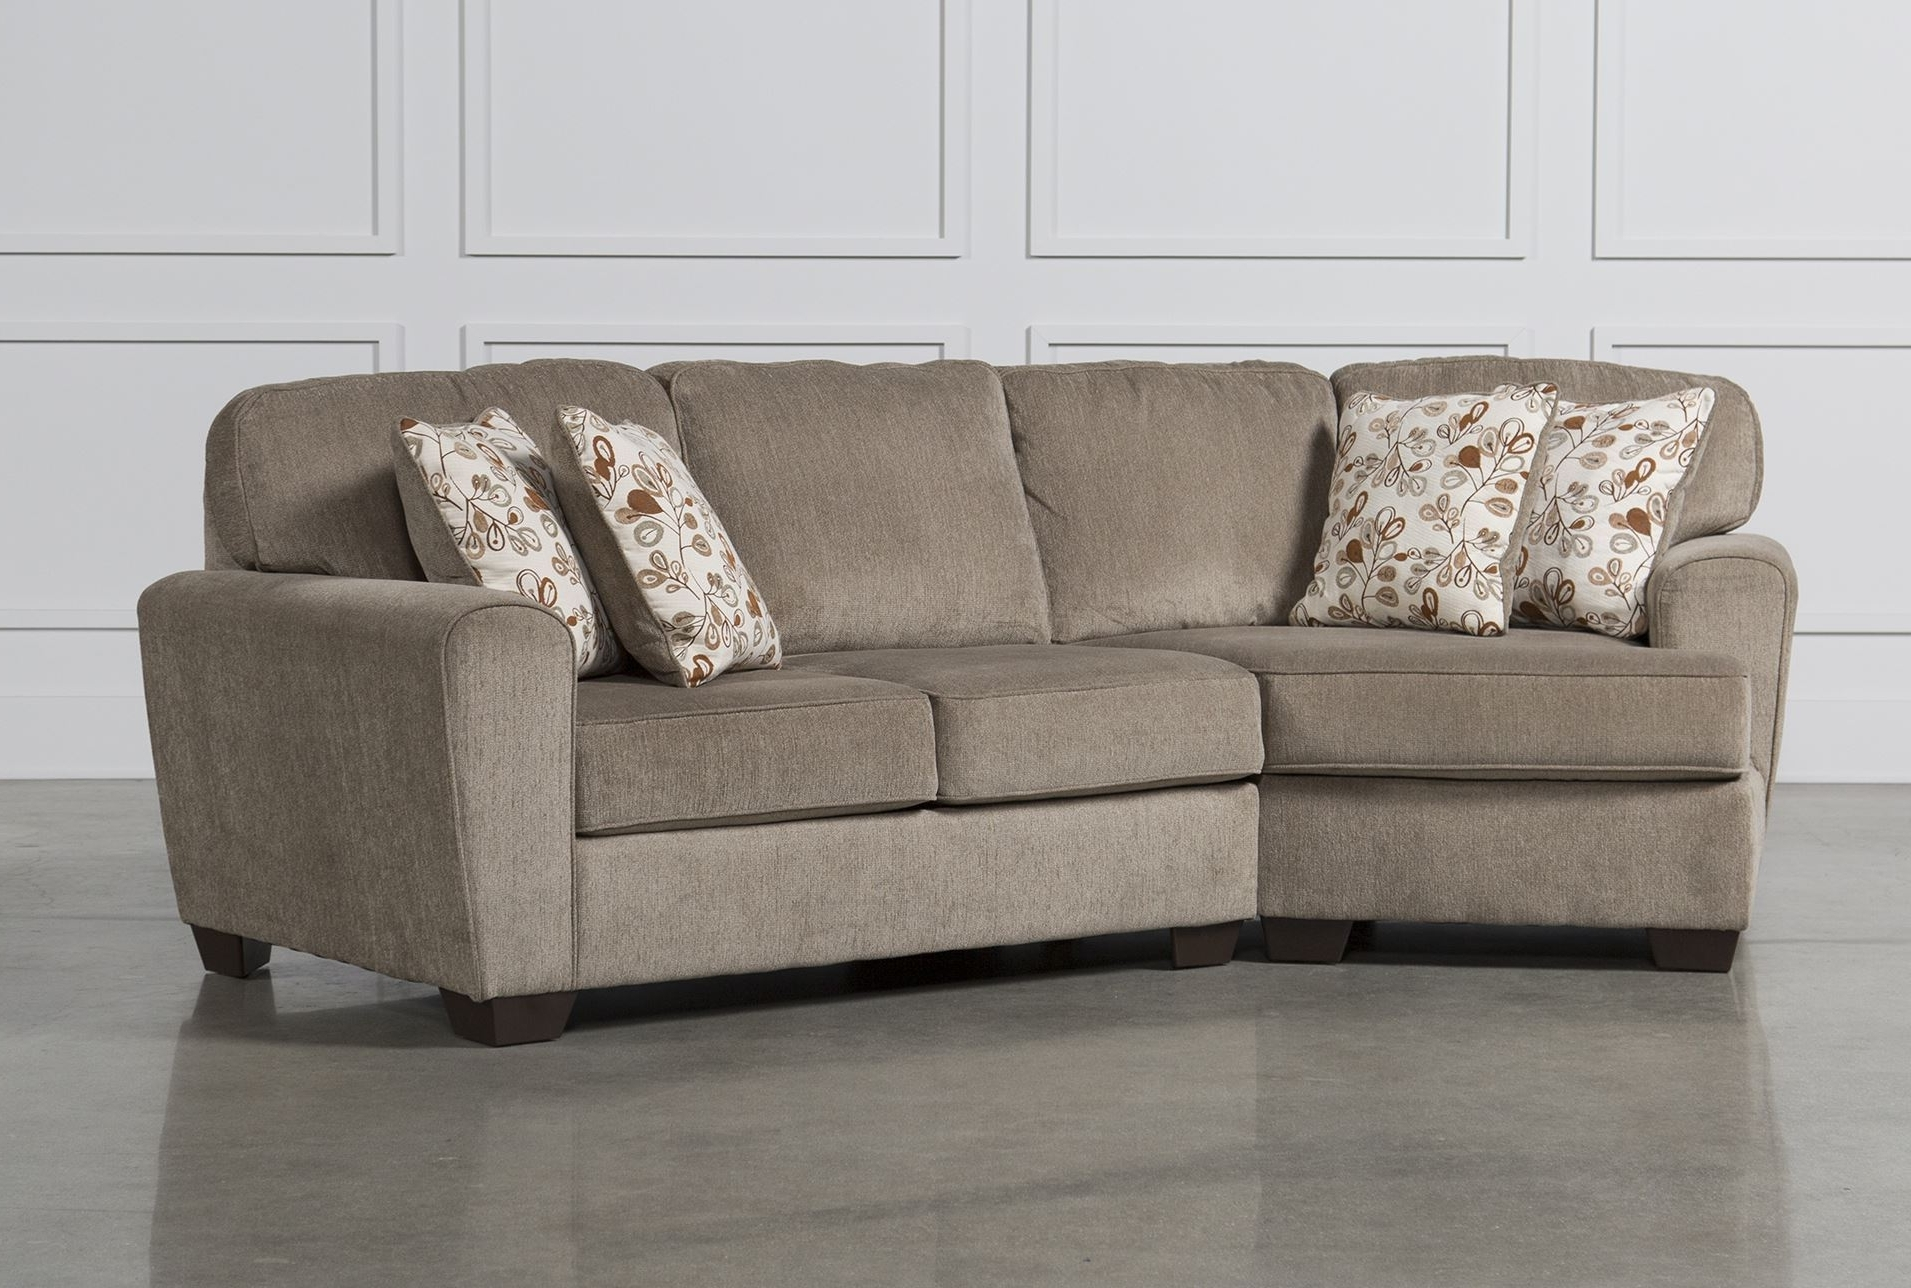 Popular Sectional Sofas With Cuddler Chaise In Latest Trend Of Sectional Sofa With Cuddler Chaise 81 In Eco (View 7 of 15)